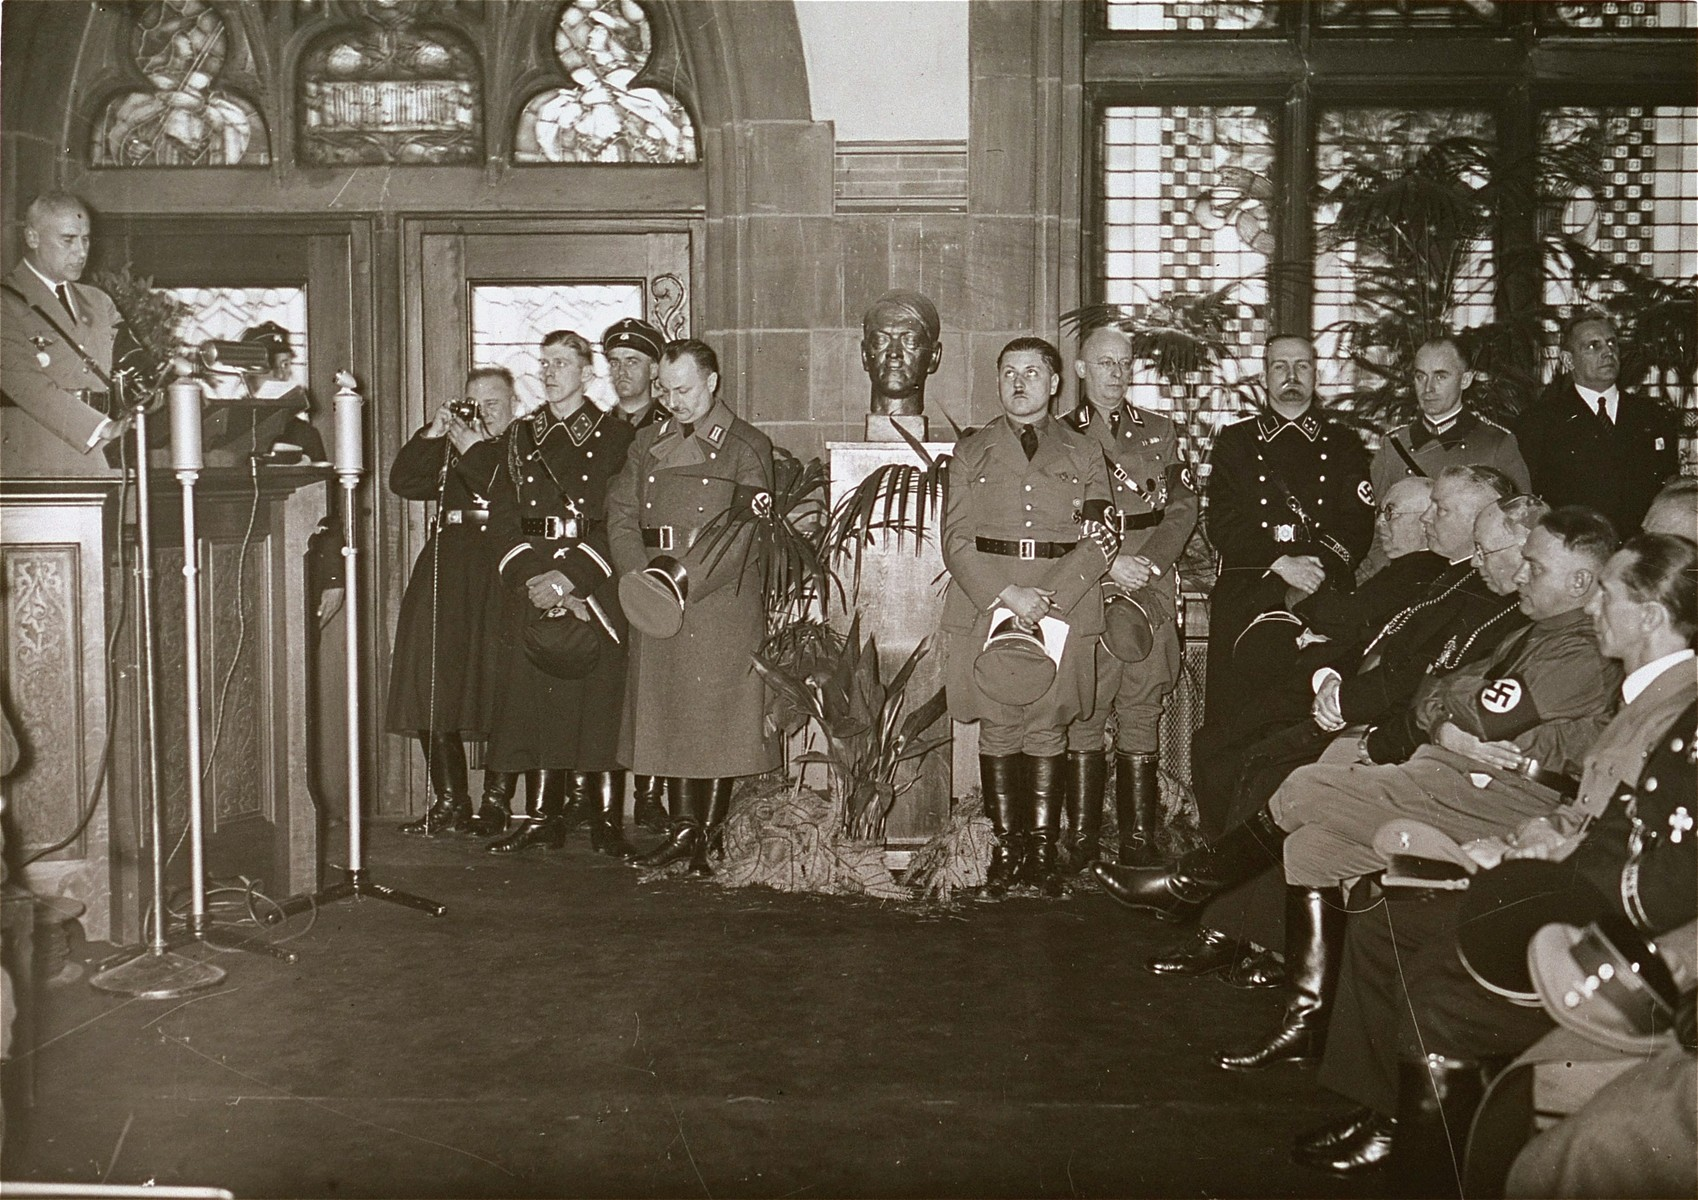 Nazi officials and Catholic bishops listen to a speech by Wilhelm Frick, Reich Minister of the Interior, at an official ceremony in the Saarbrucken city hall marking the re-incorporation of the Saarland into the German Reich.  Among those pictured is Joseph Goebbels (seated at the far right), Franz Rudolf Bornewasser (Bishop of Trier) and Ludwig Sebastian (Bishop of Speyer).